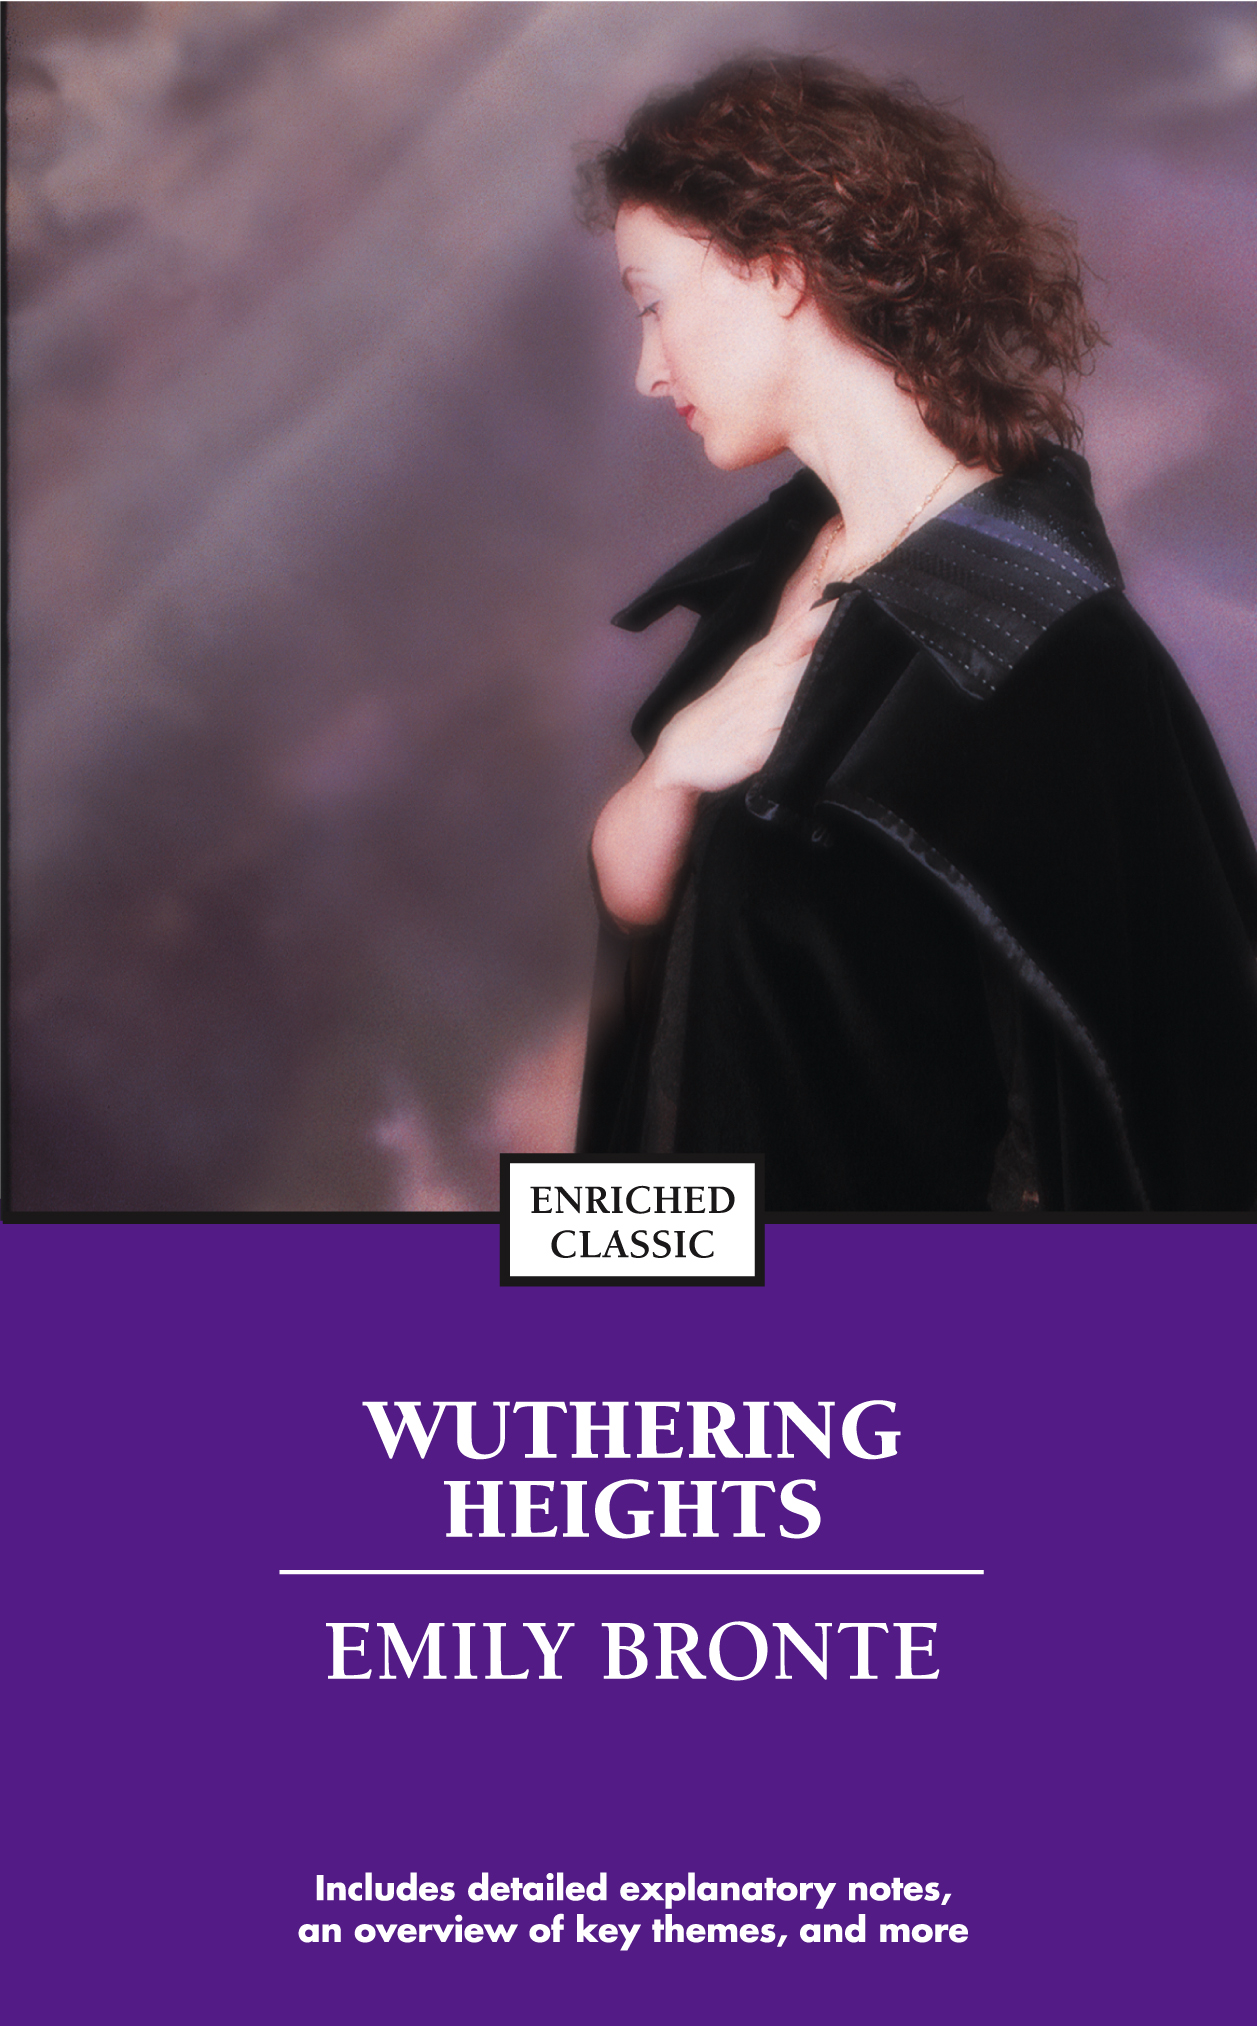 The enduring appeal of Emily Bronte and Wuthering Heights